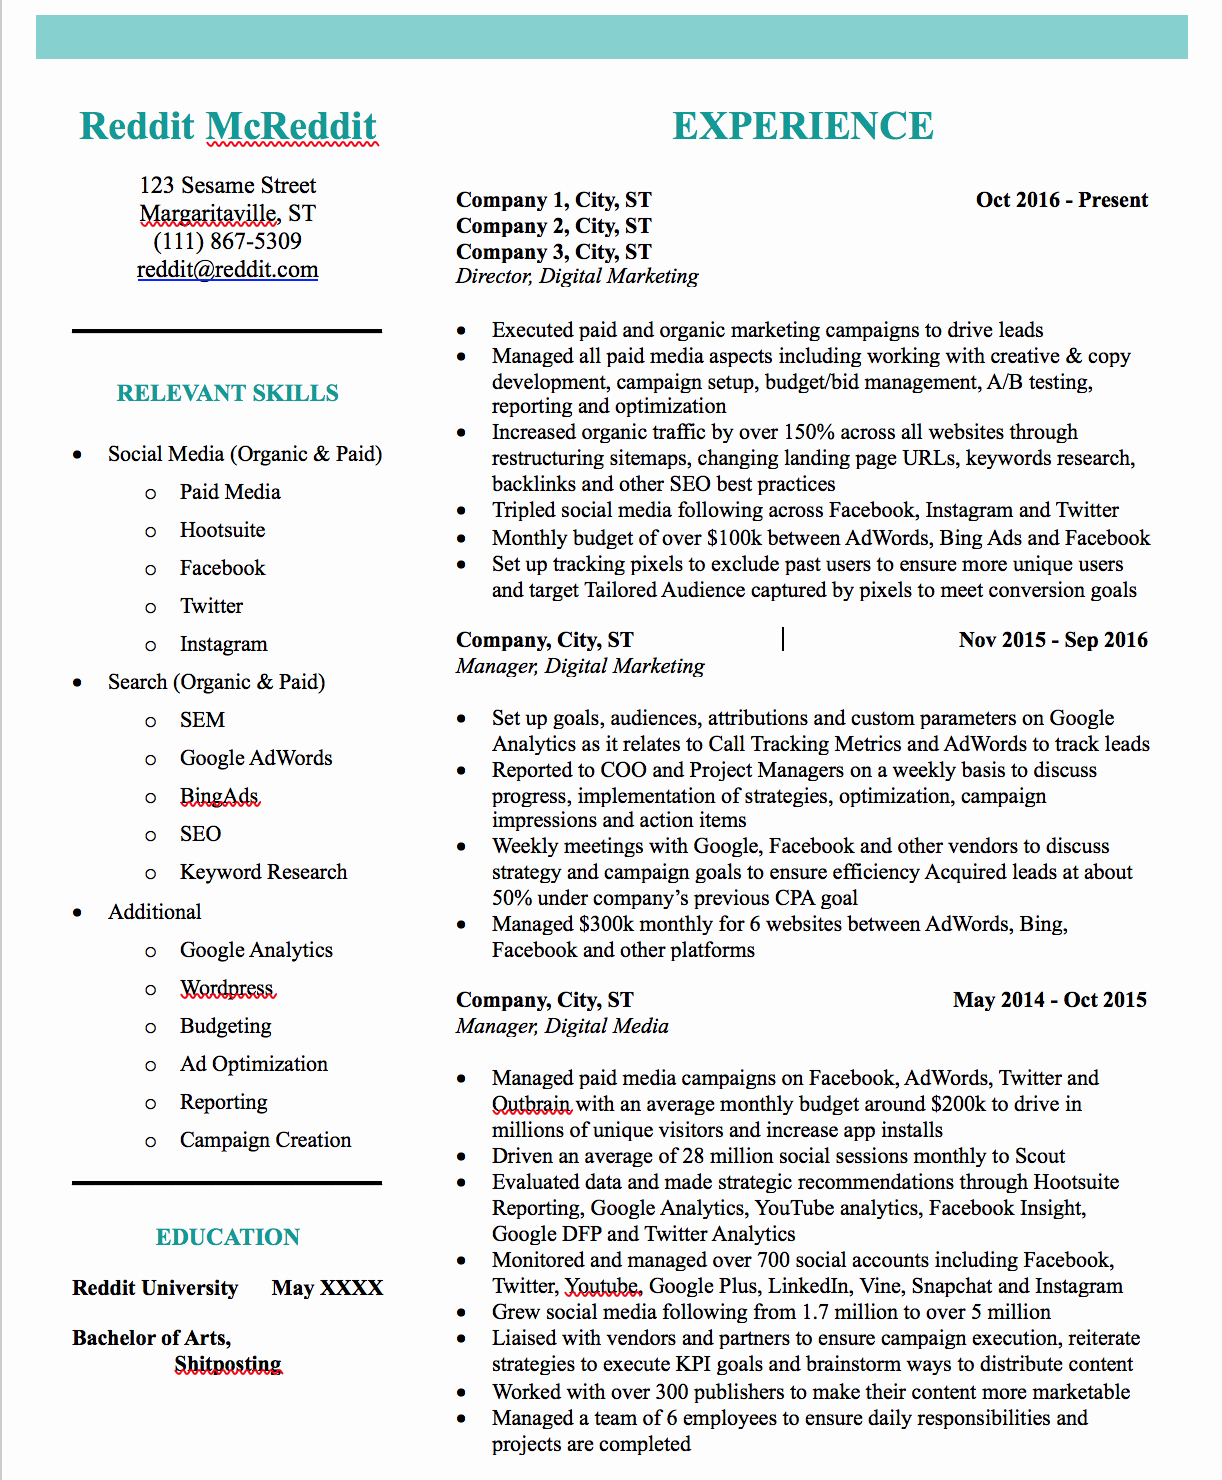 Digital Marketing Resume Sample Beautiful Digital Marketing Resume Am I Doing too Much with the